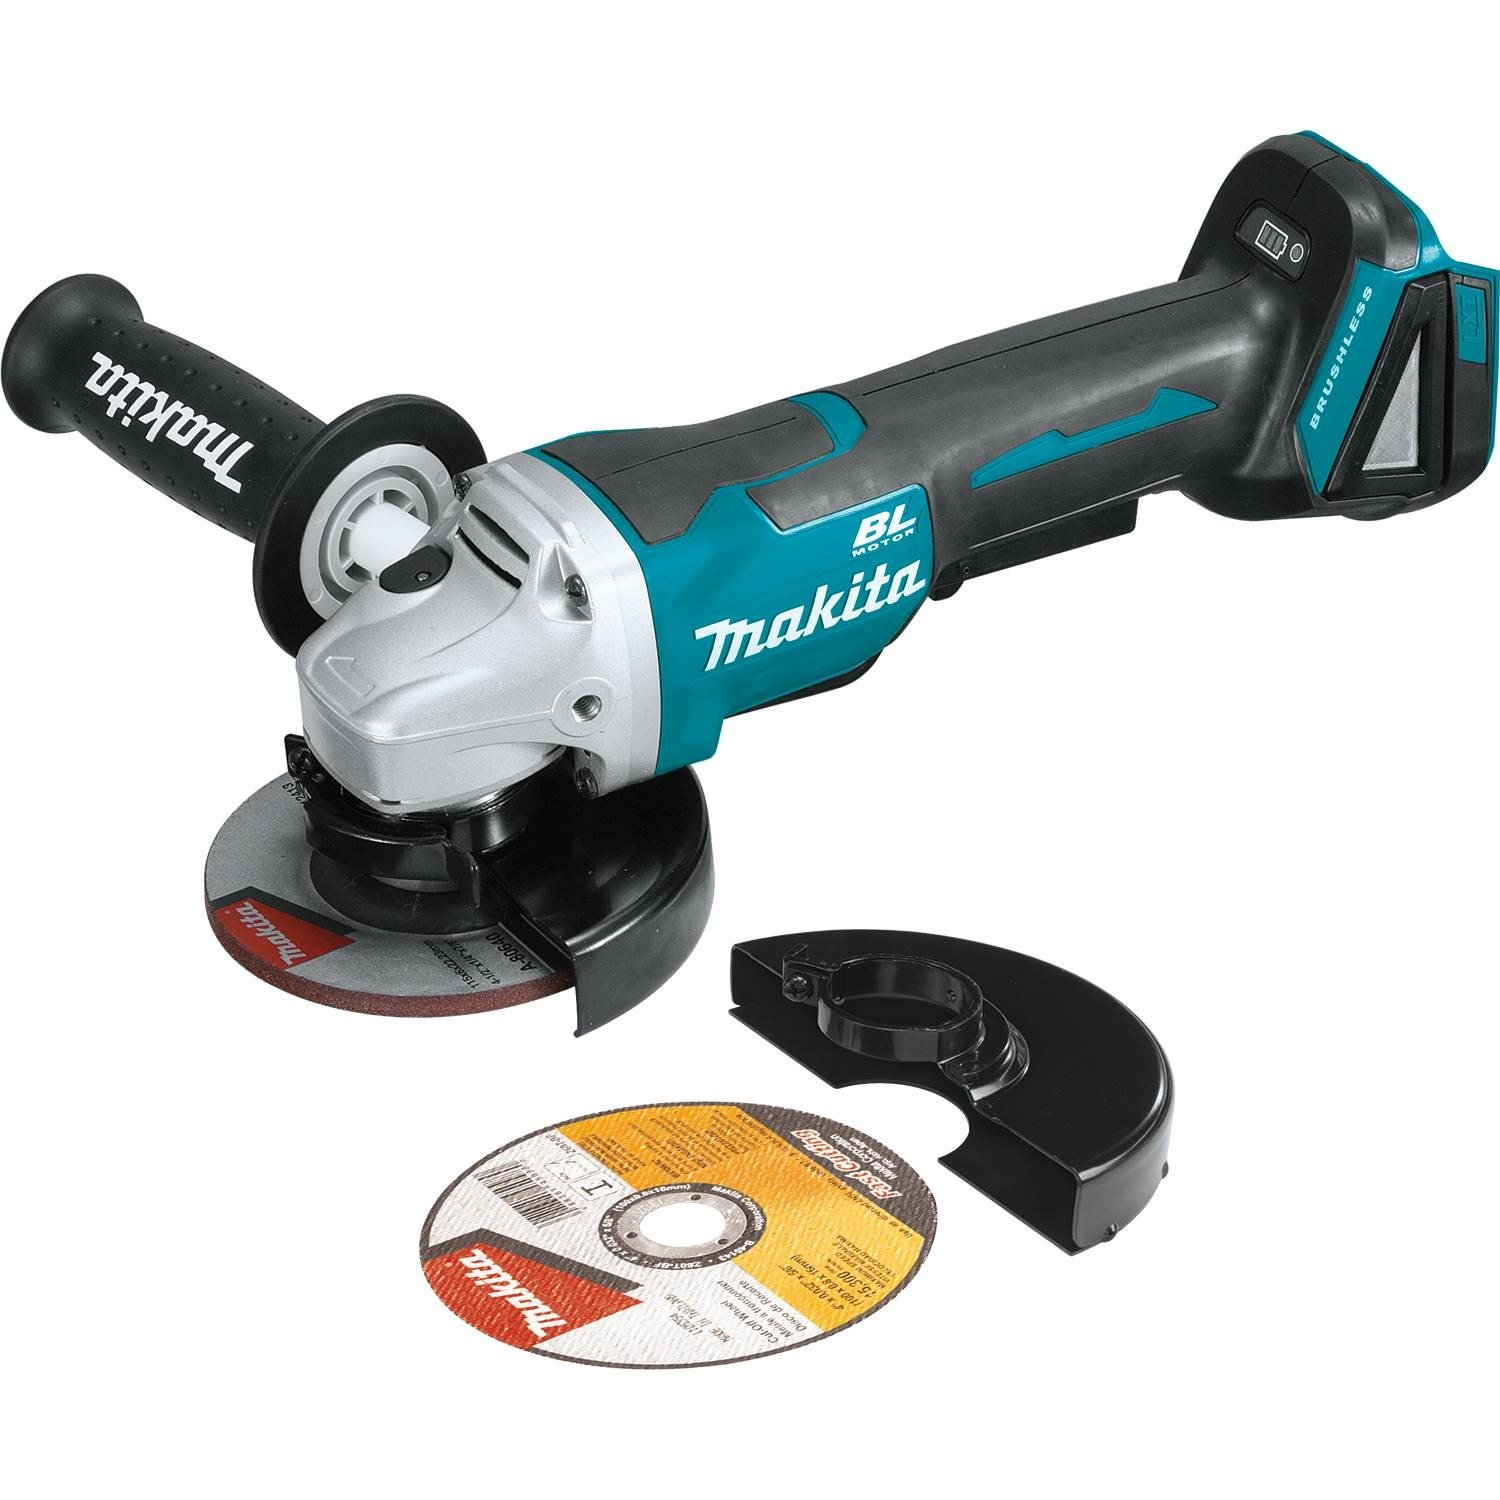 Makita XAG06Z 18V LXT Lithium-Ion Brushless Cordless 4-1 2 Paddle Switch Cut-Off Angle Grinder Kit